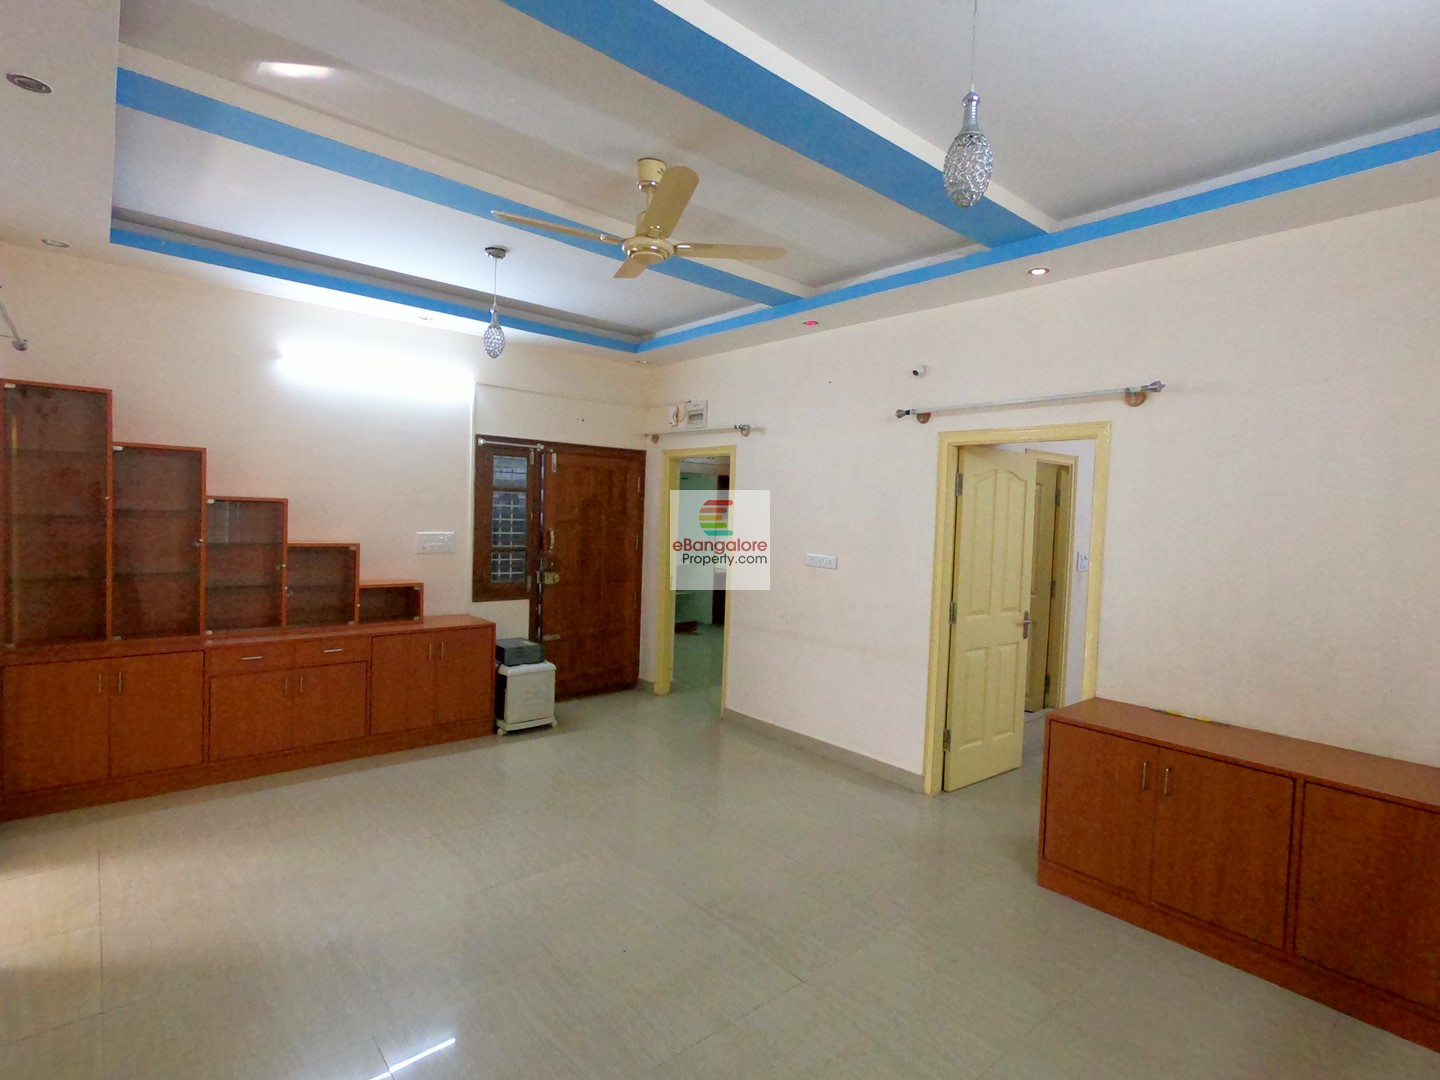 RT Nagar Extension – 3BHK Flat For Resale With Basic Amenities – A Khata